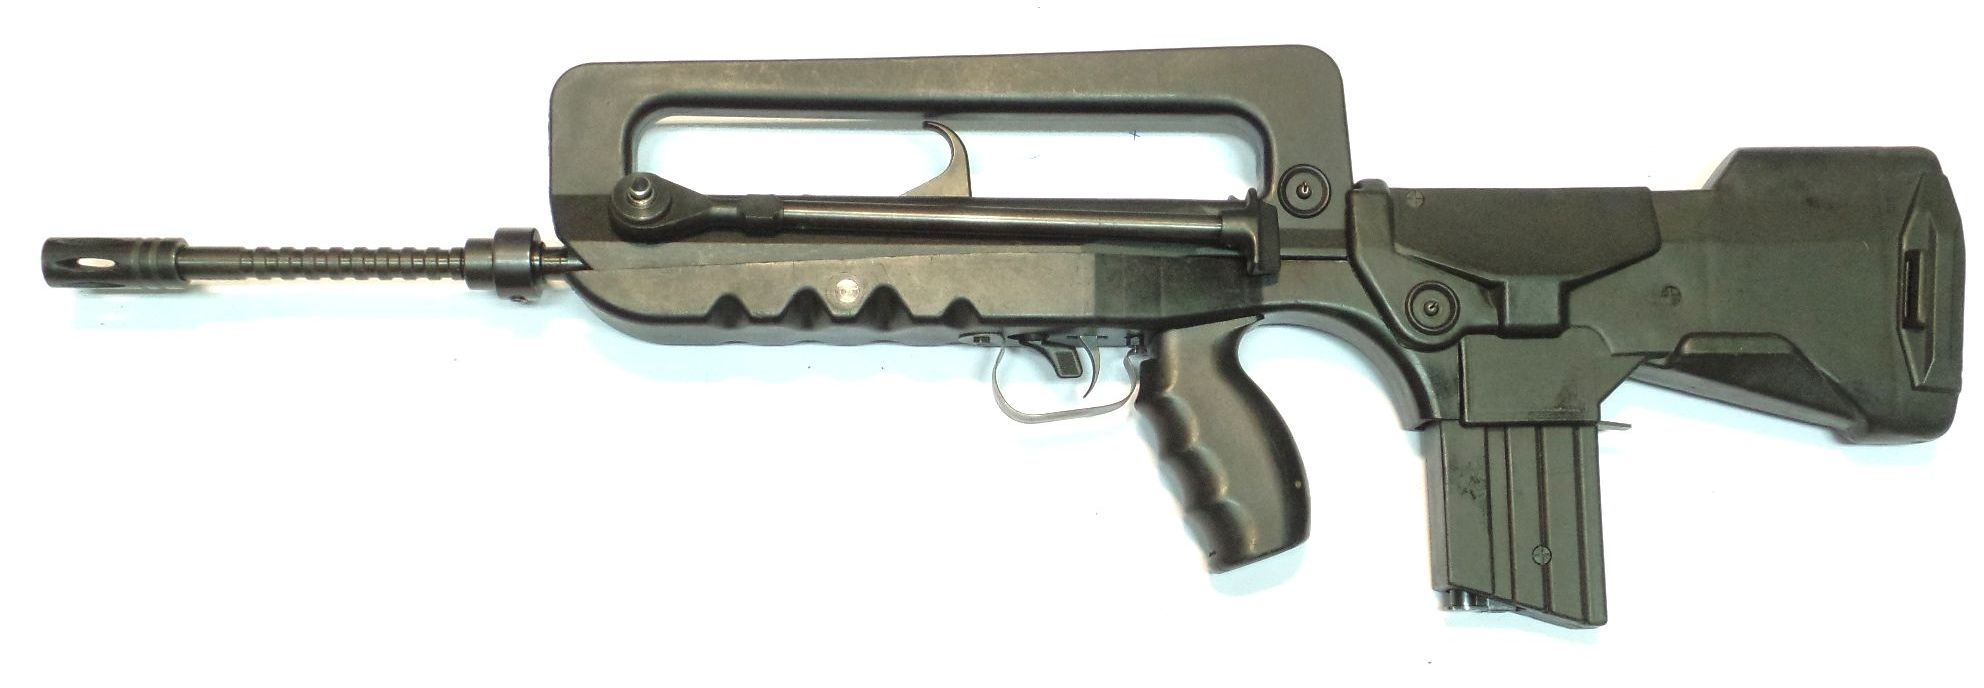 Unique F11 (Famas) calibre 22LR